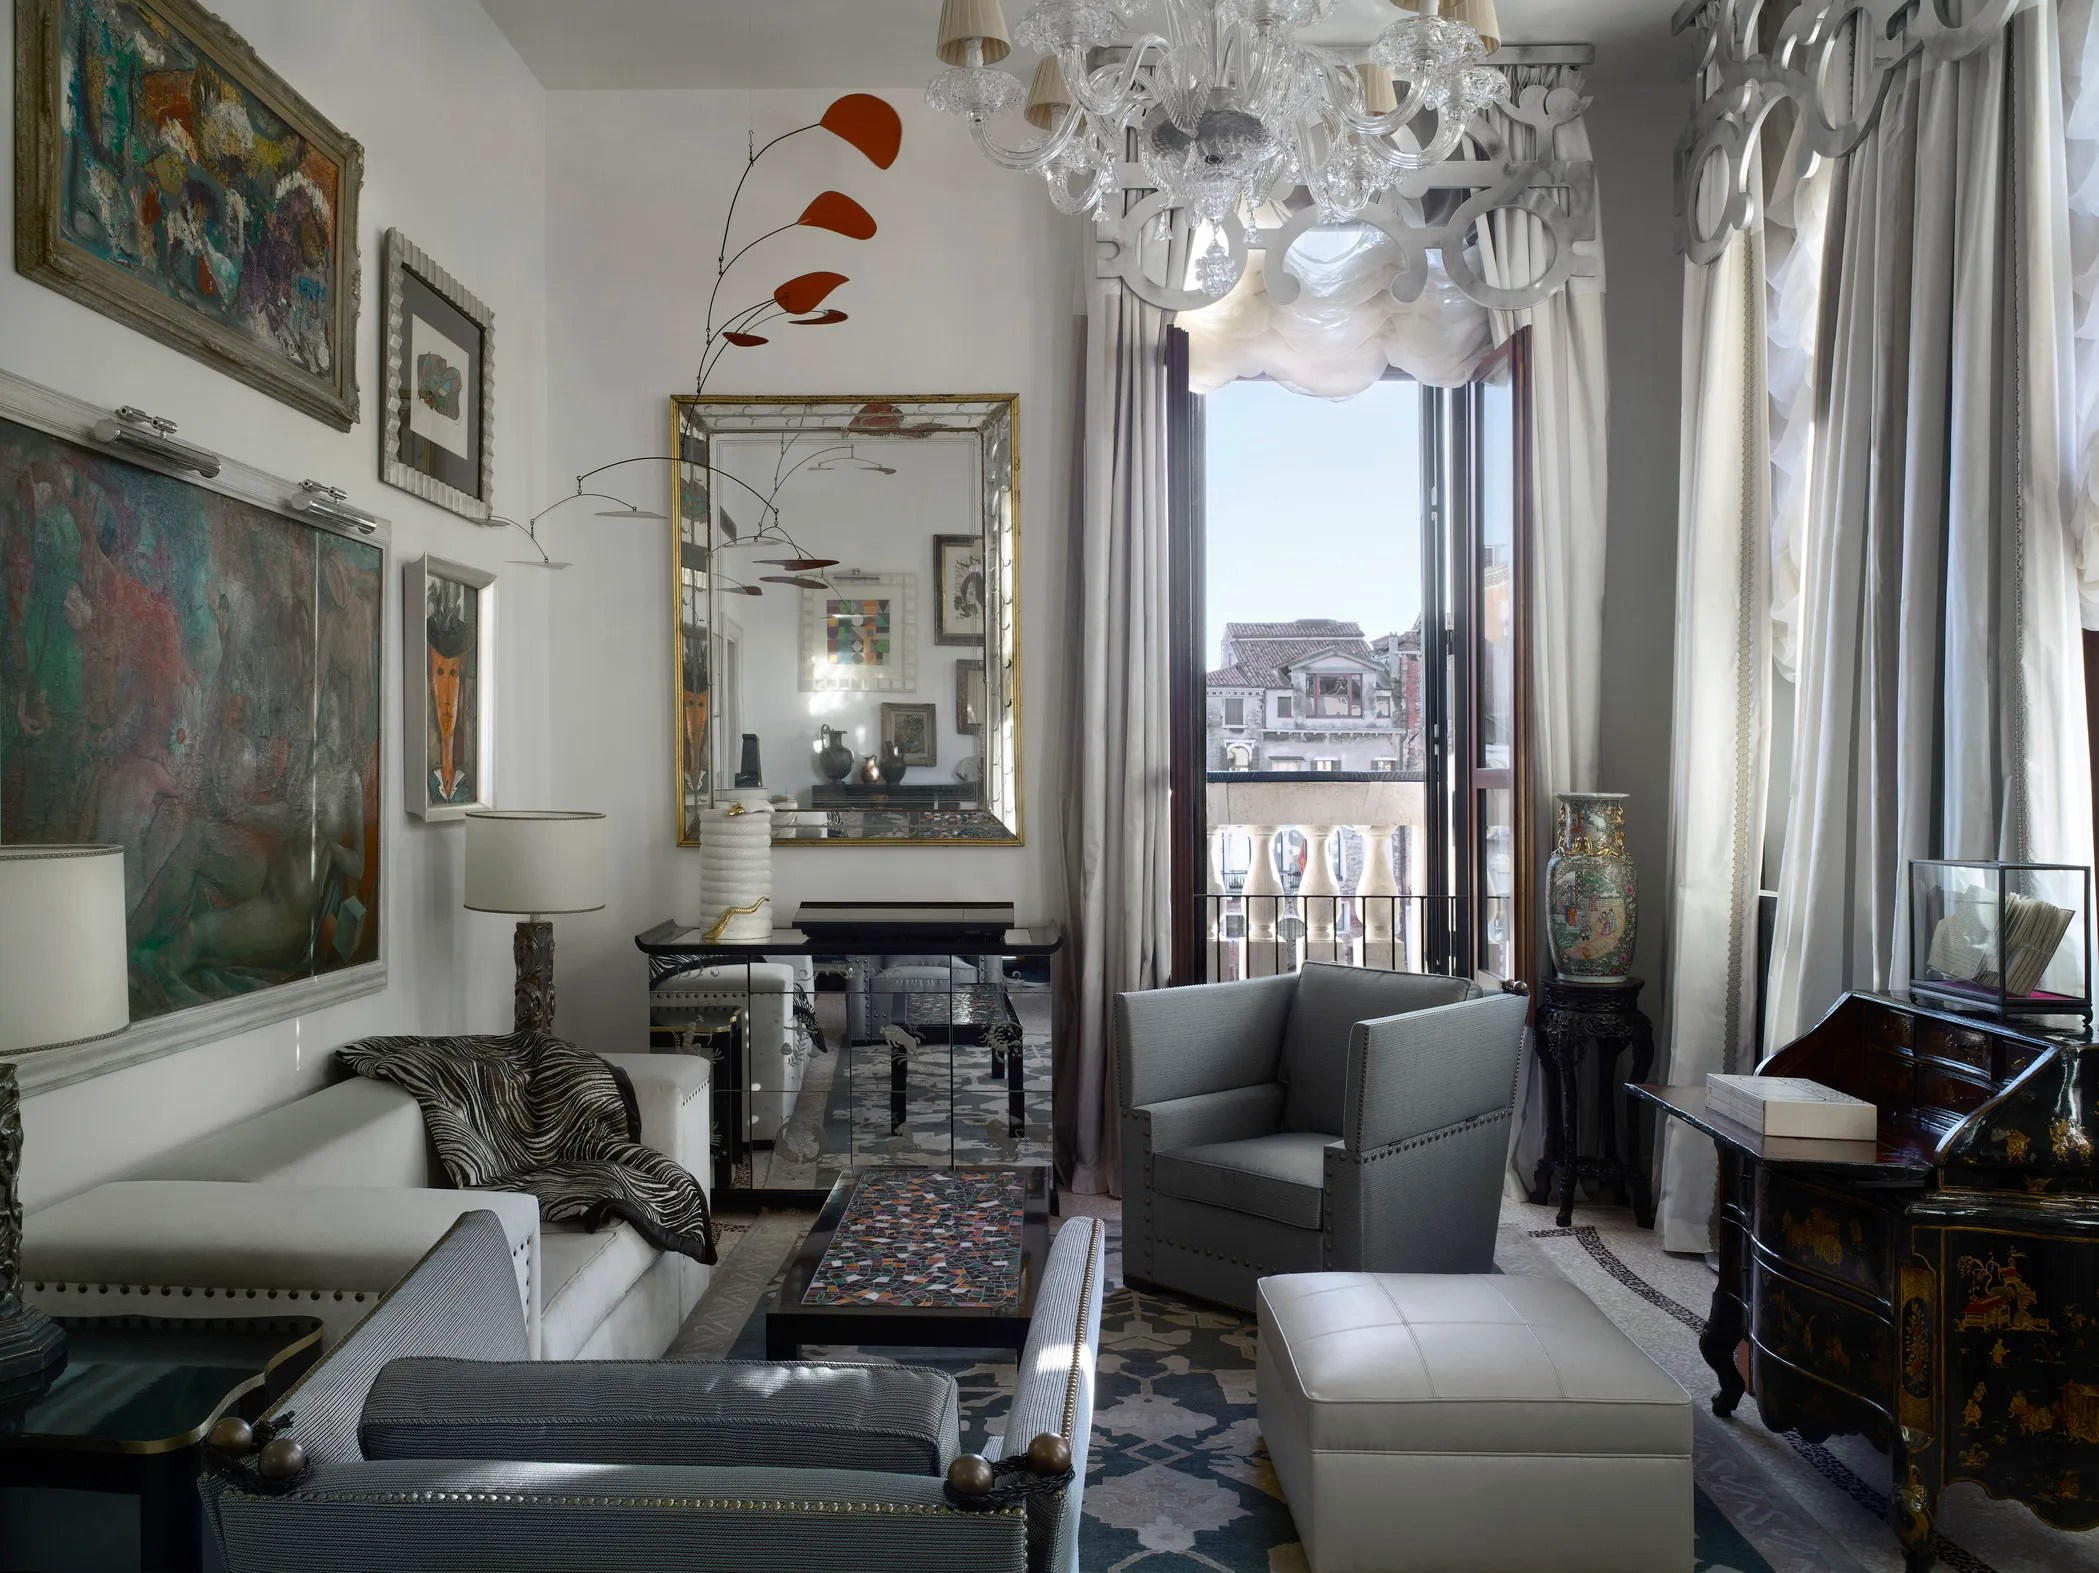 The Most Requested Suite At Venices Gritti Palace